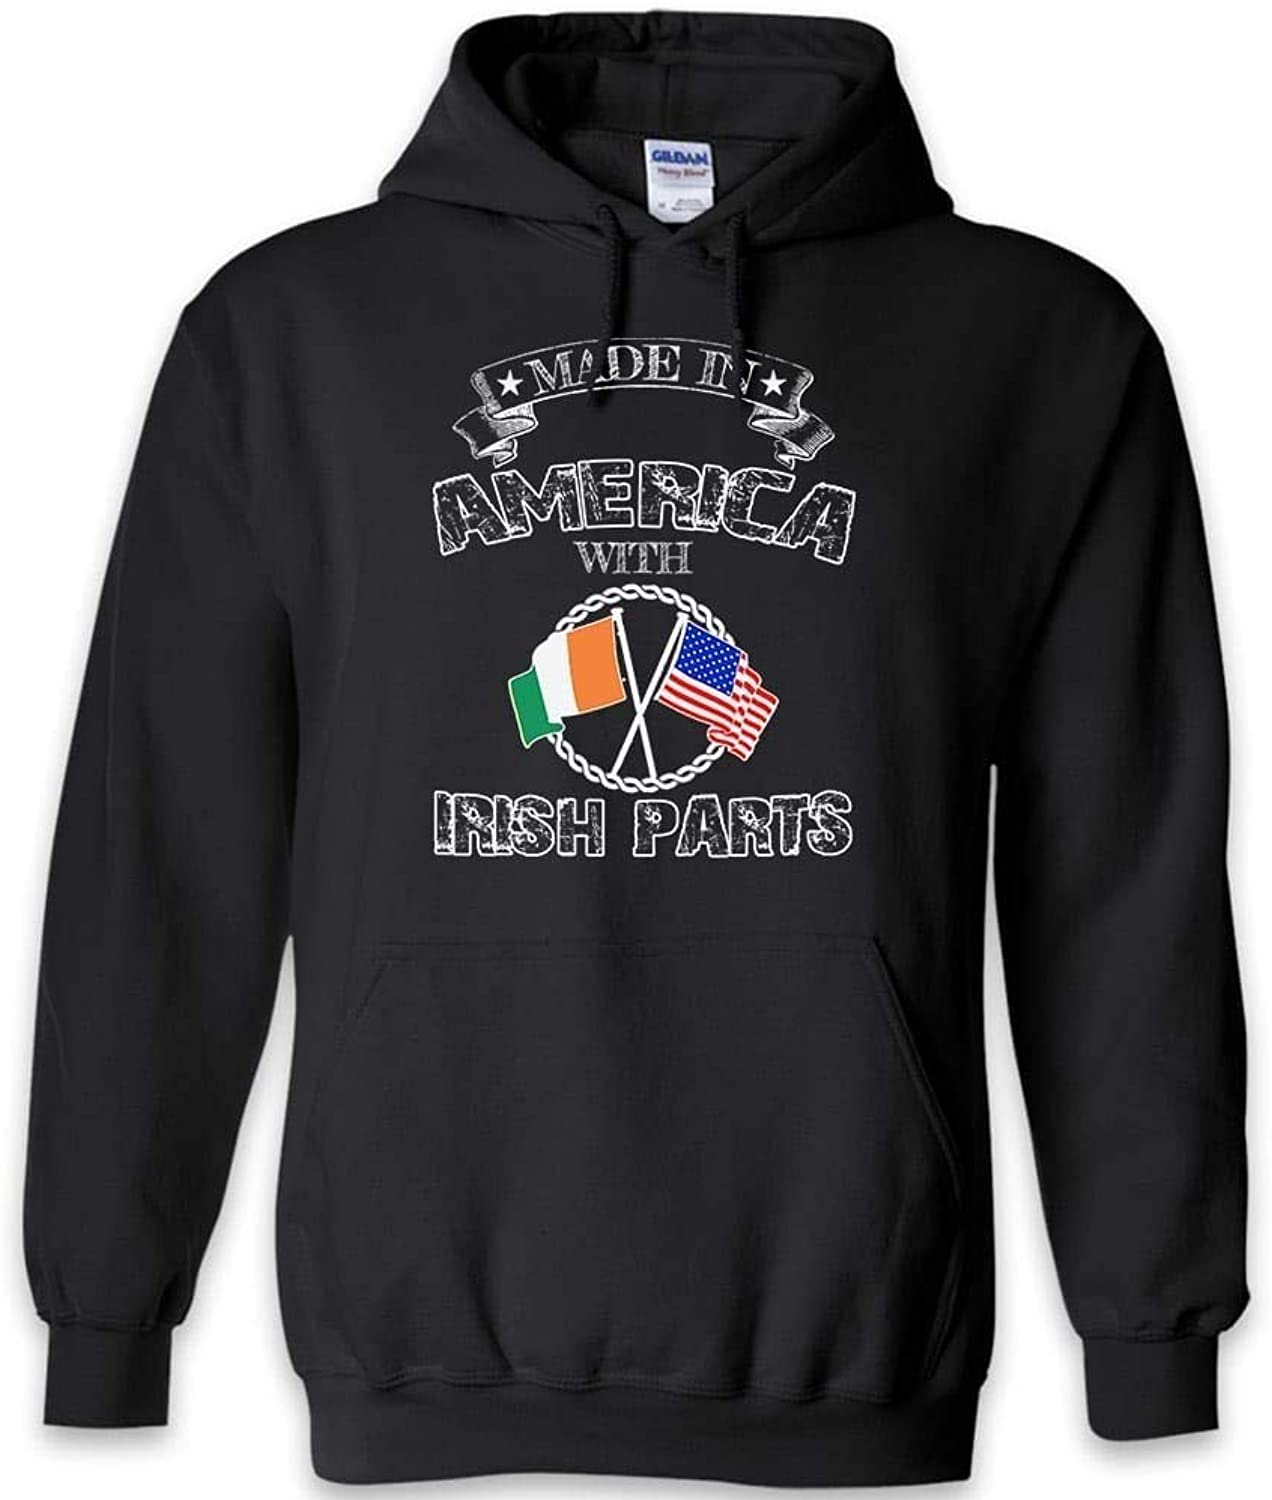 Teelaunch Made in America Irish Parts Funny Hoodie   Black Navy Grey   S to 2XL